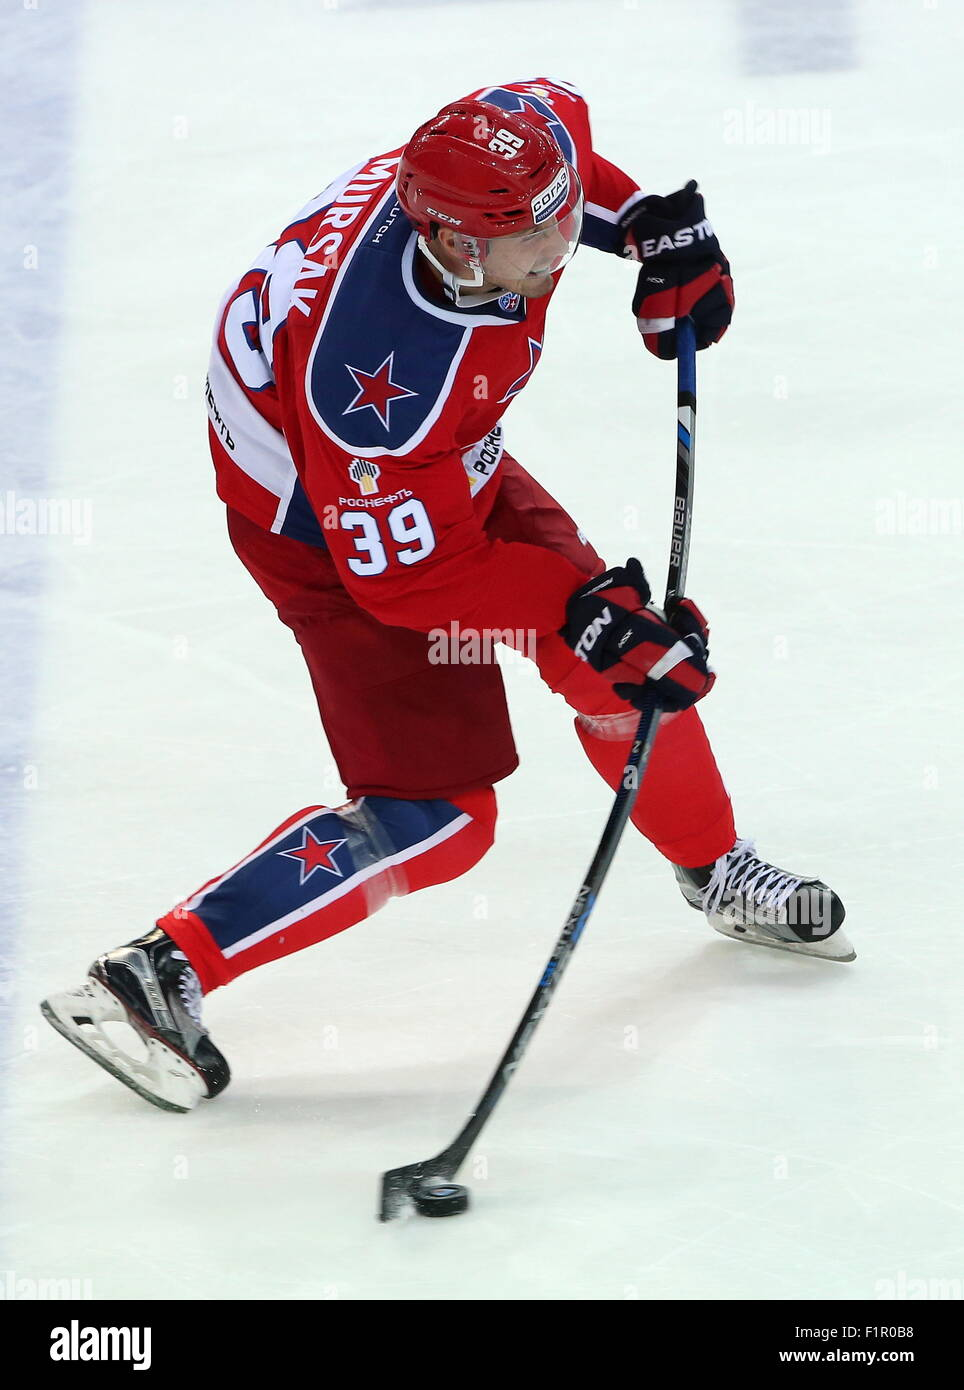 Moscow, Russia. 4th Sep, 2015. CSKA's Jan Mursak in action in a 2015/2016 KHL Regular Season ice hockey match - Stock Image